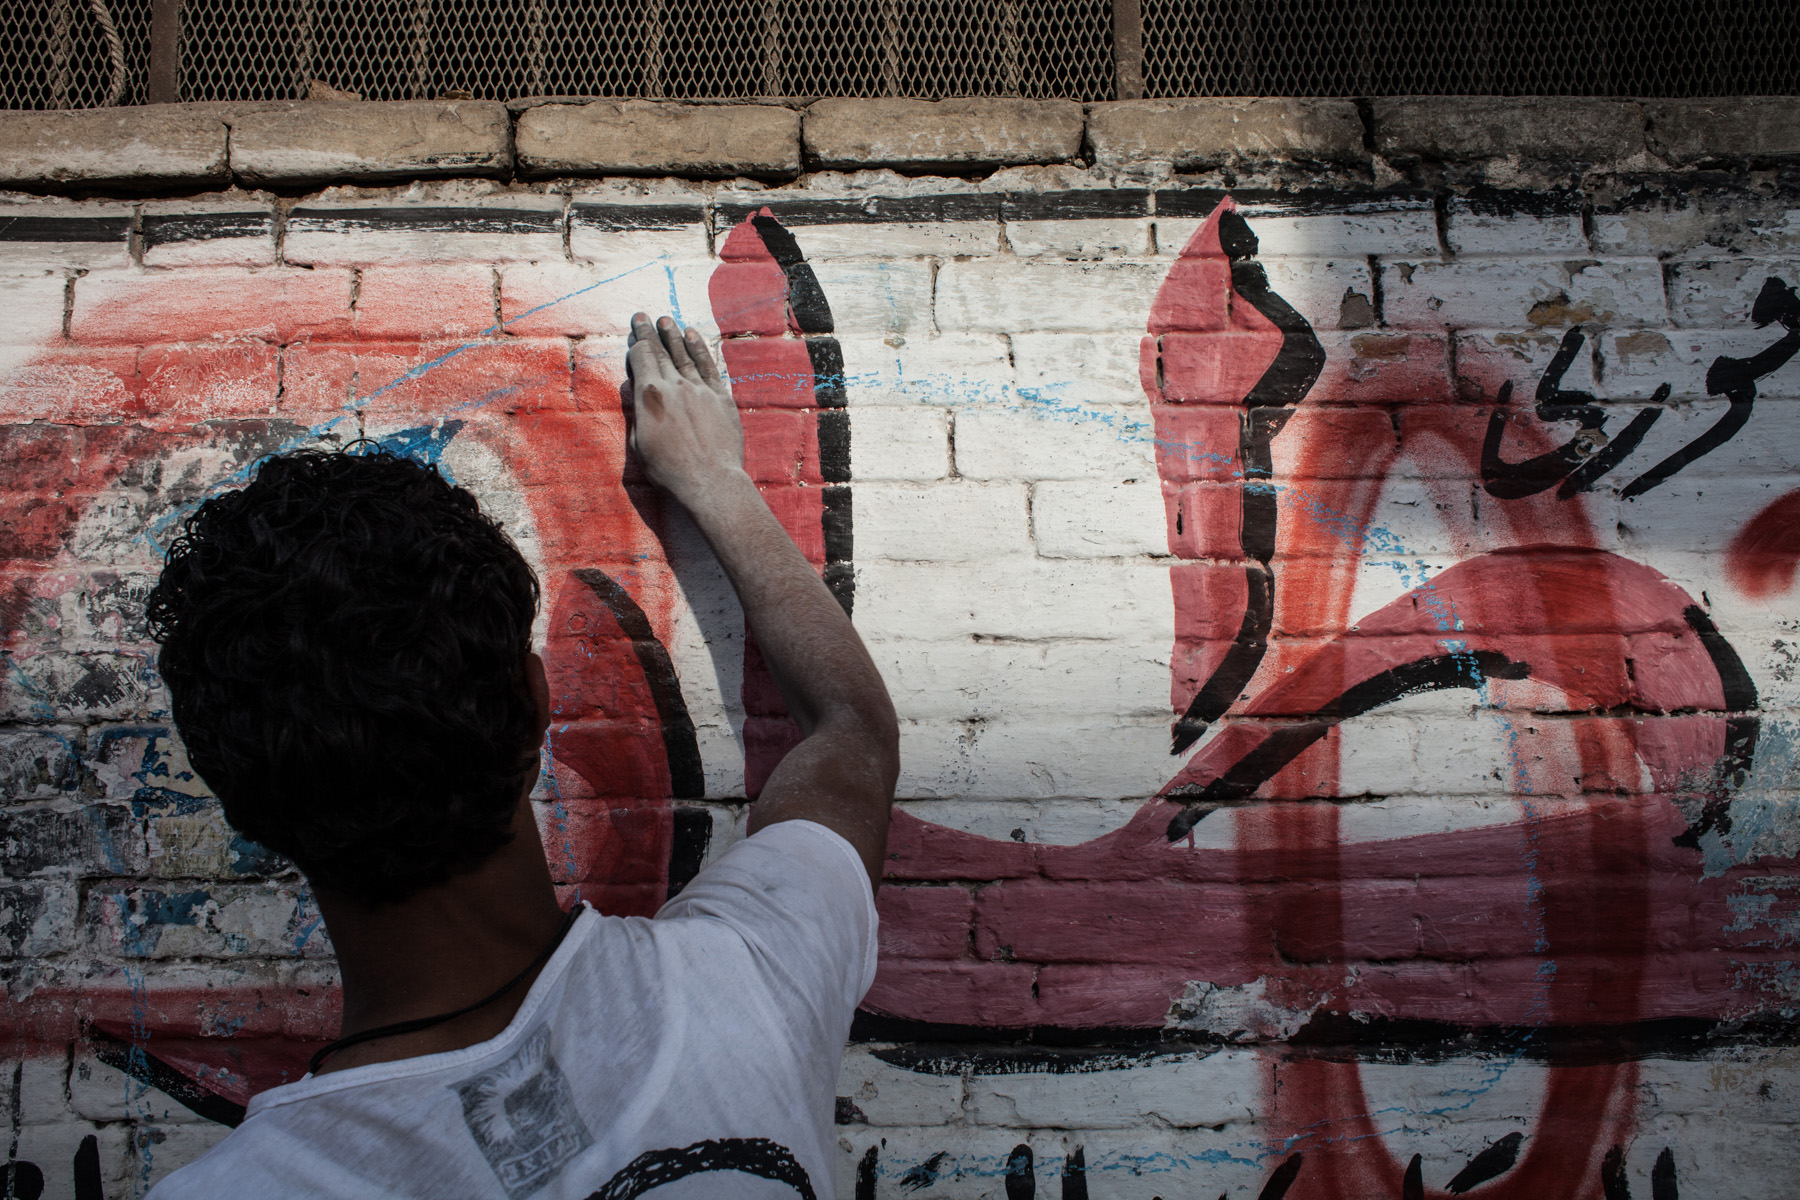 a member of the Ahlawy drawing illegal wall paintings in Cairo's district Matereya.